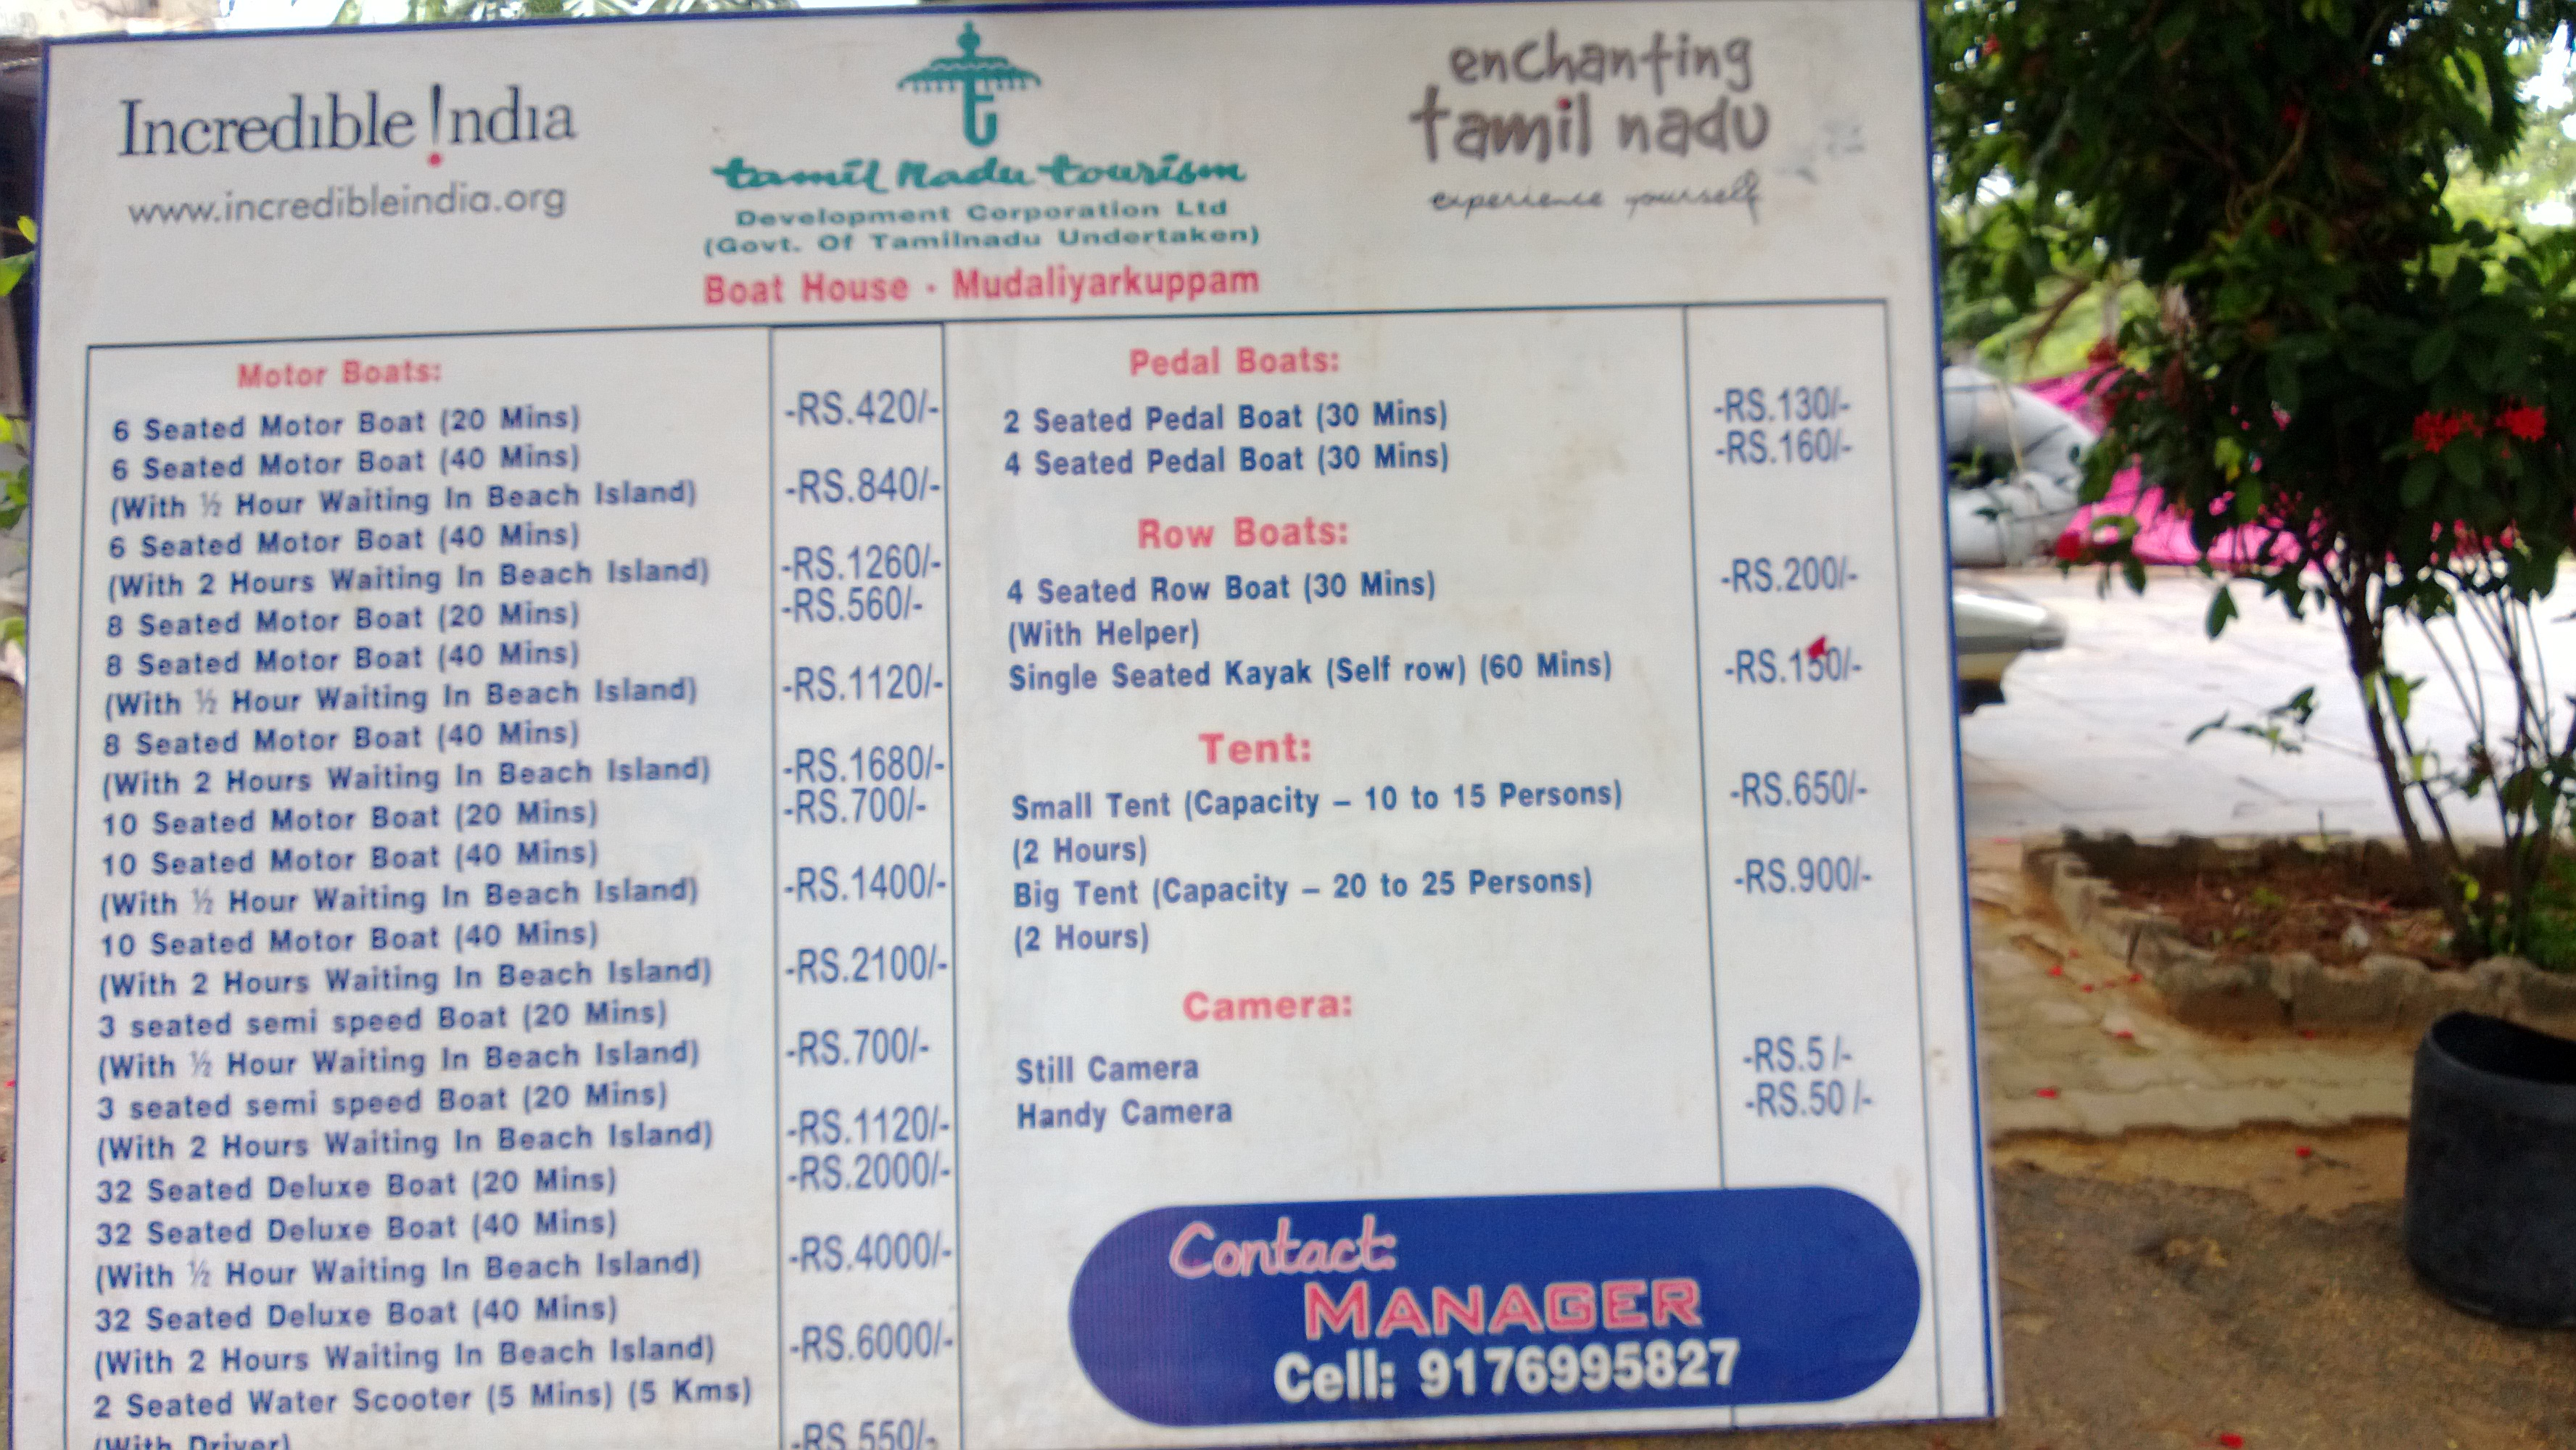 Mudhaliarkuppam Boat House : Latest Price List -17th August 2013